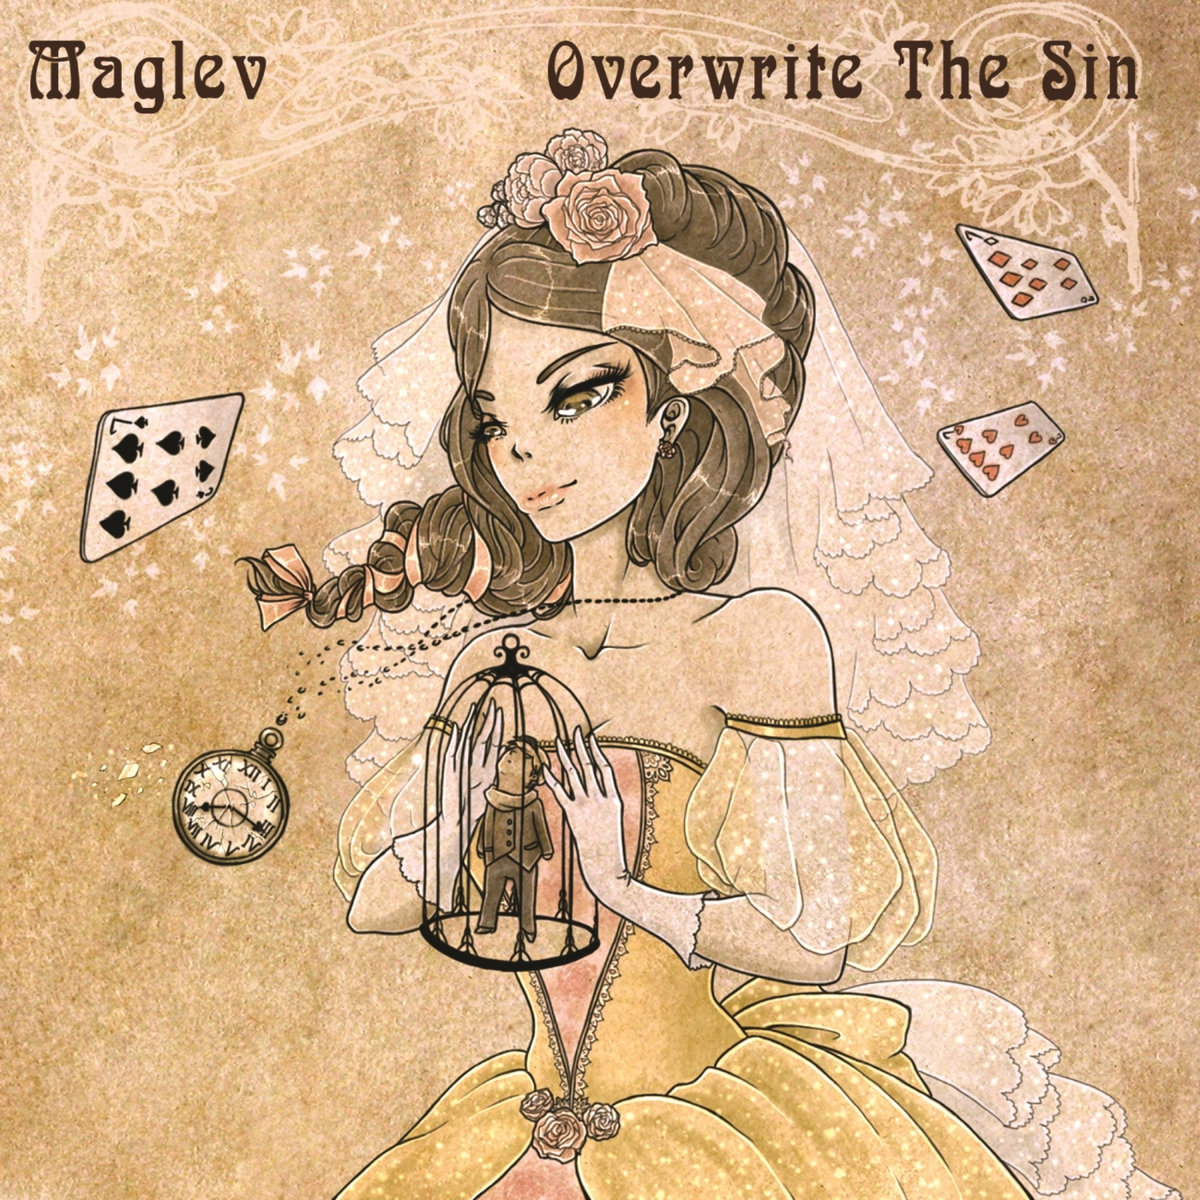 Maglev: Overwrite the Sin